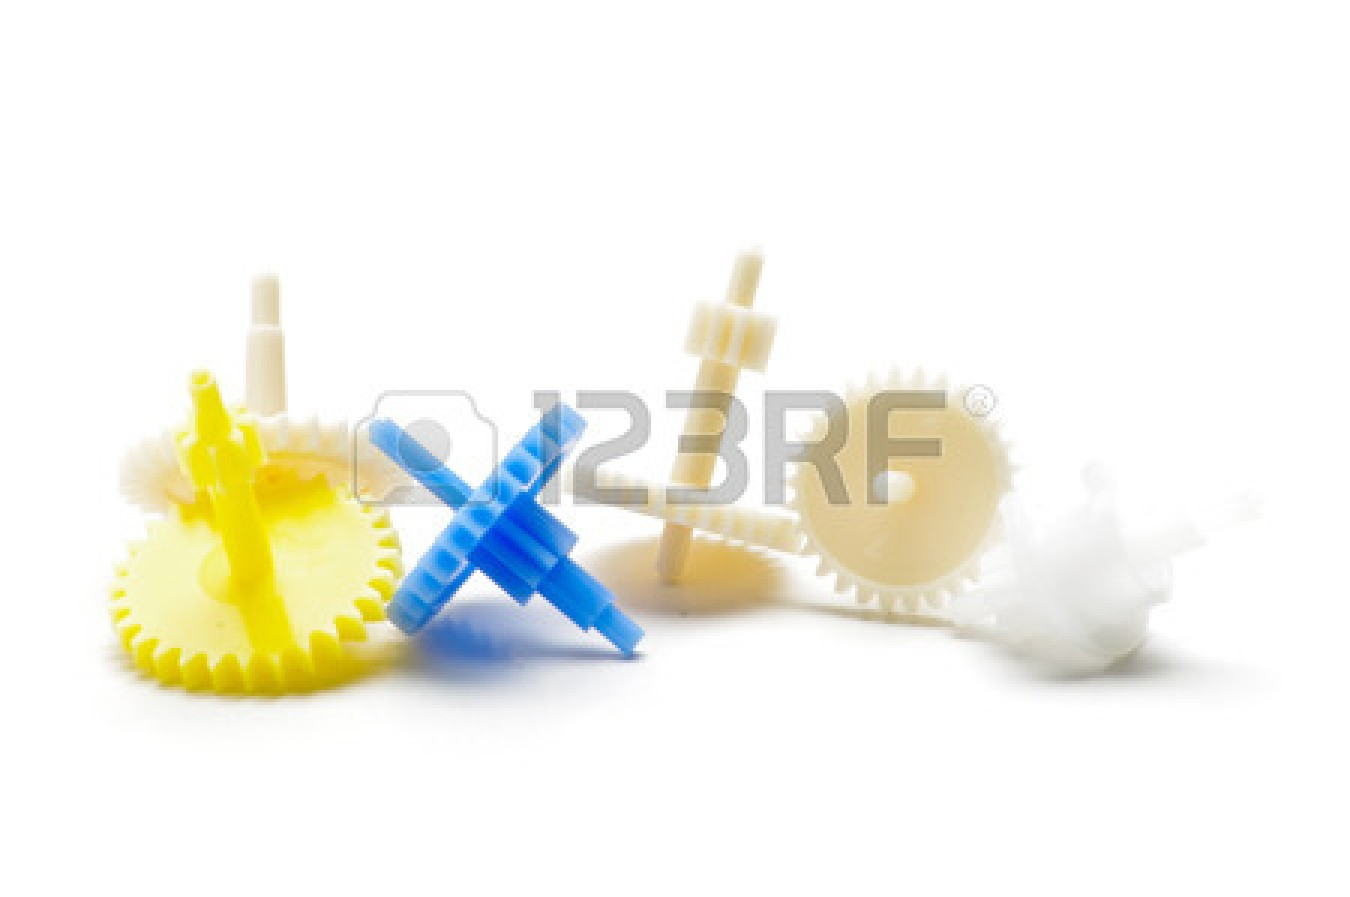 cheap-20stock-20photos-24423209-cheap-plastic-gears.jpg: www.clipartpanda.com/categories/cheap-20stock-20photos